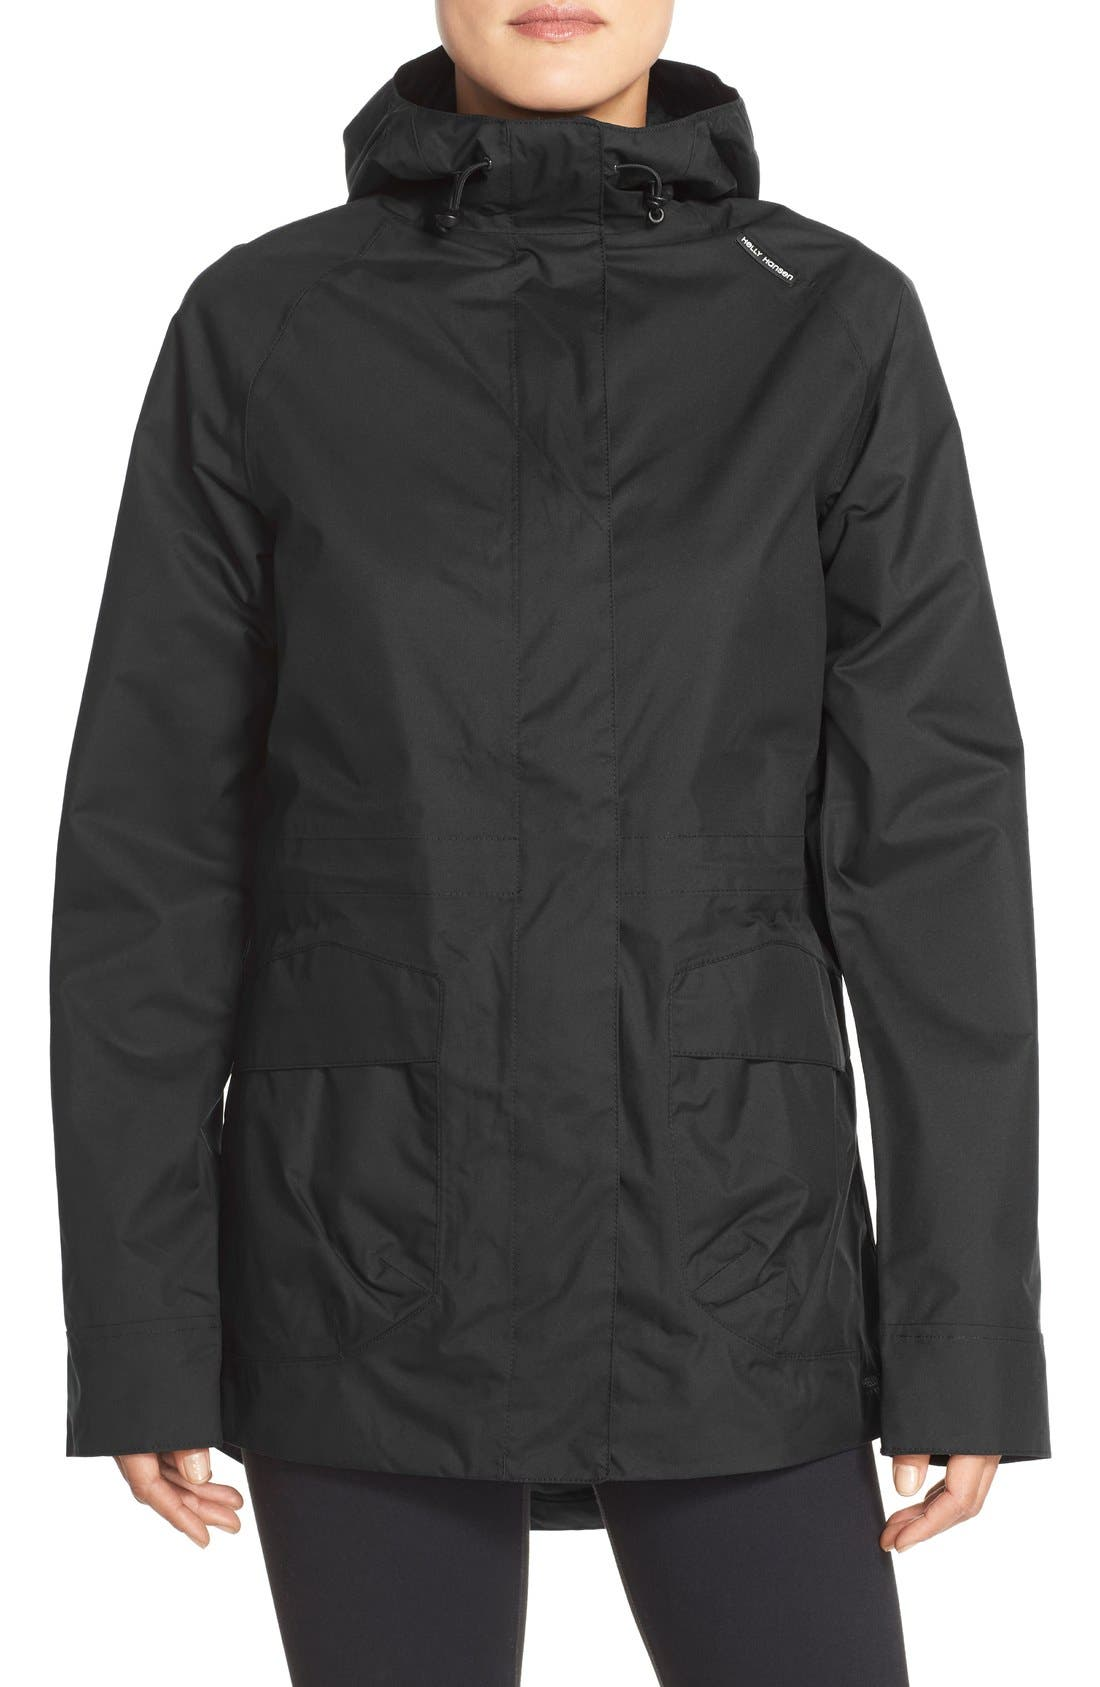 Alternate Image 1 Selected - Helly Hansen 'Appleton' Waterproof Coat